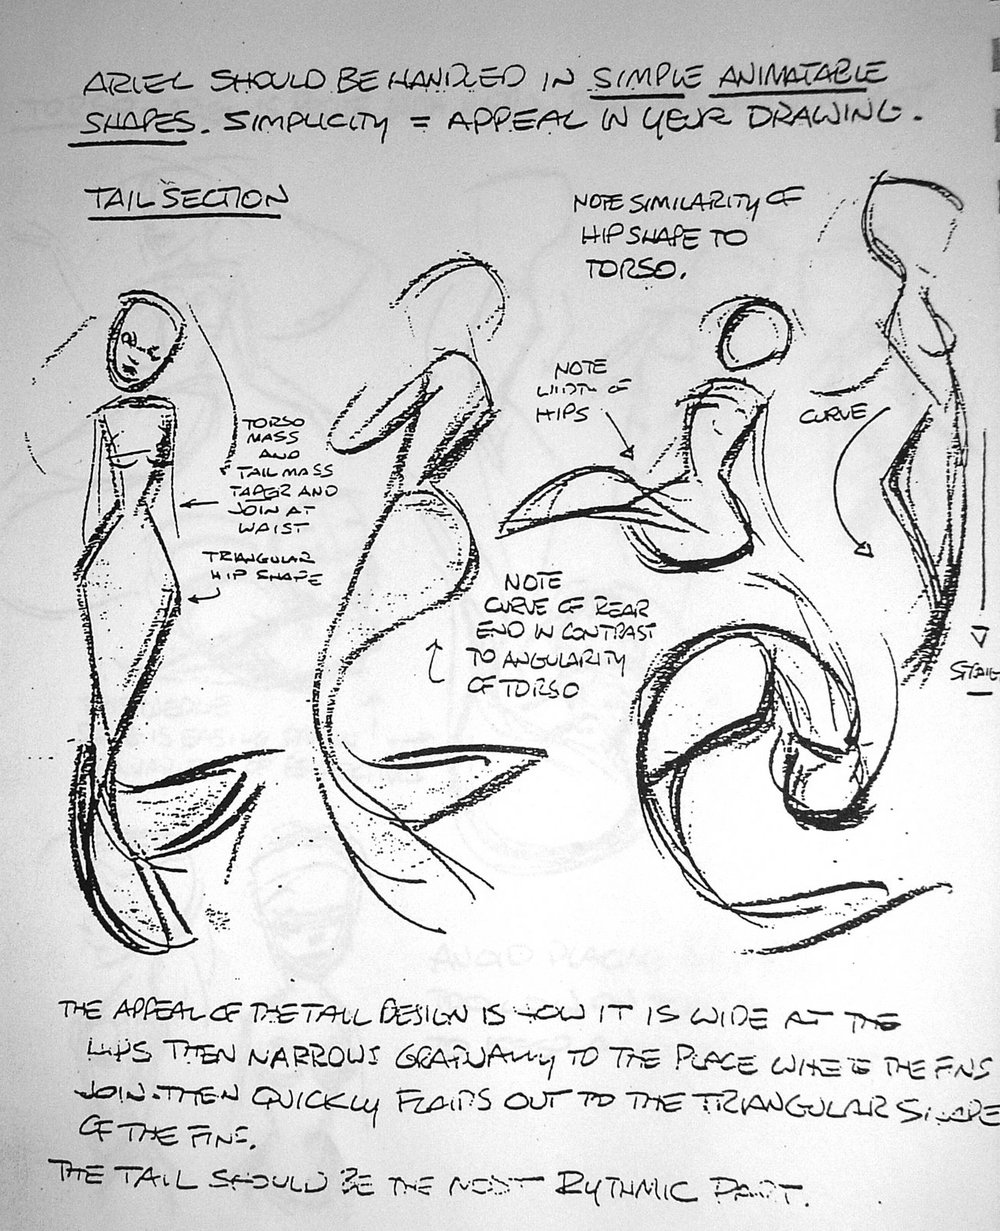 Glen Keane's character design sketches for Ariel from The Little Mermaid (1989)